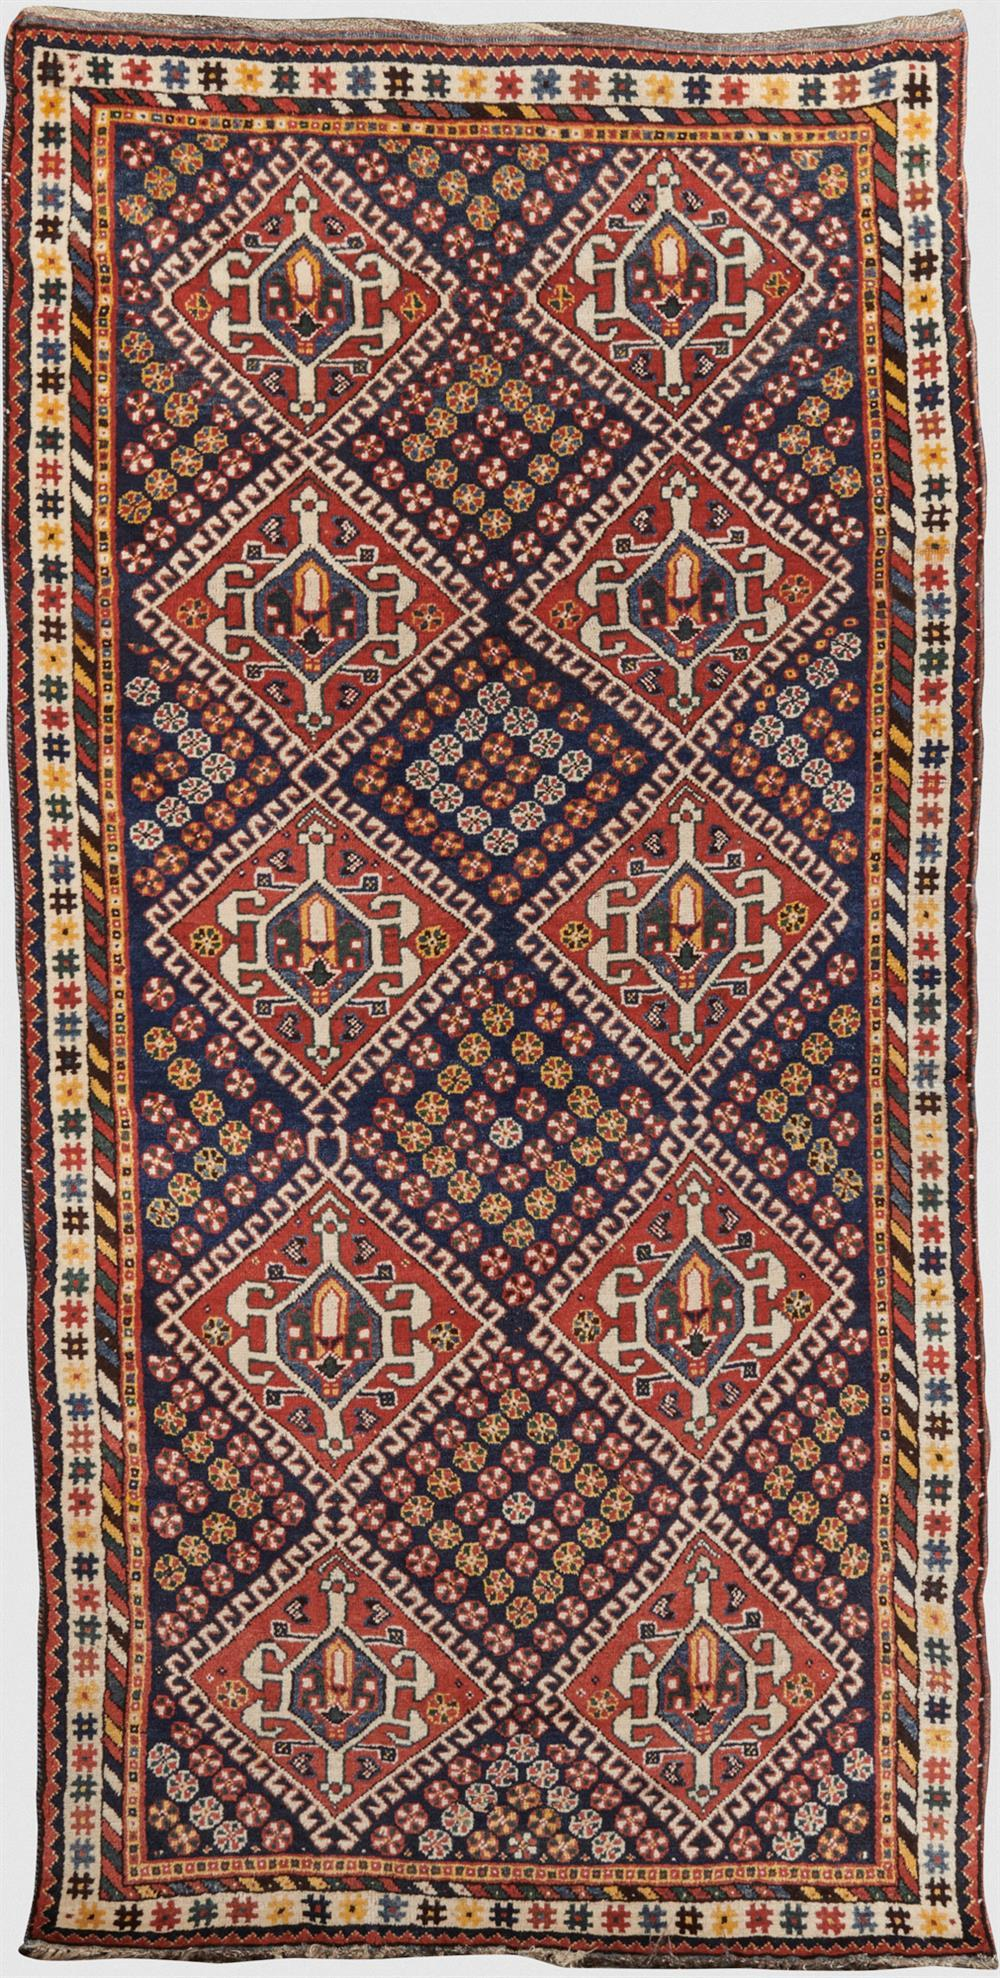 Luri Rug, Persia, late 19th century; 8 ft. 6 in. x 4 ft. 3 in.